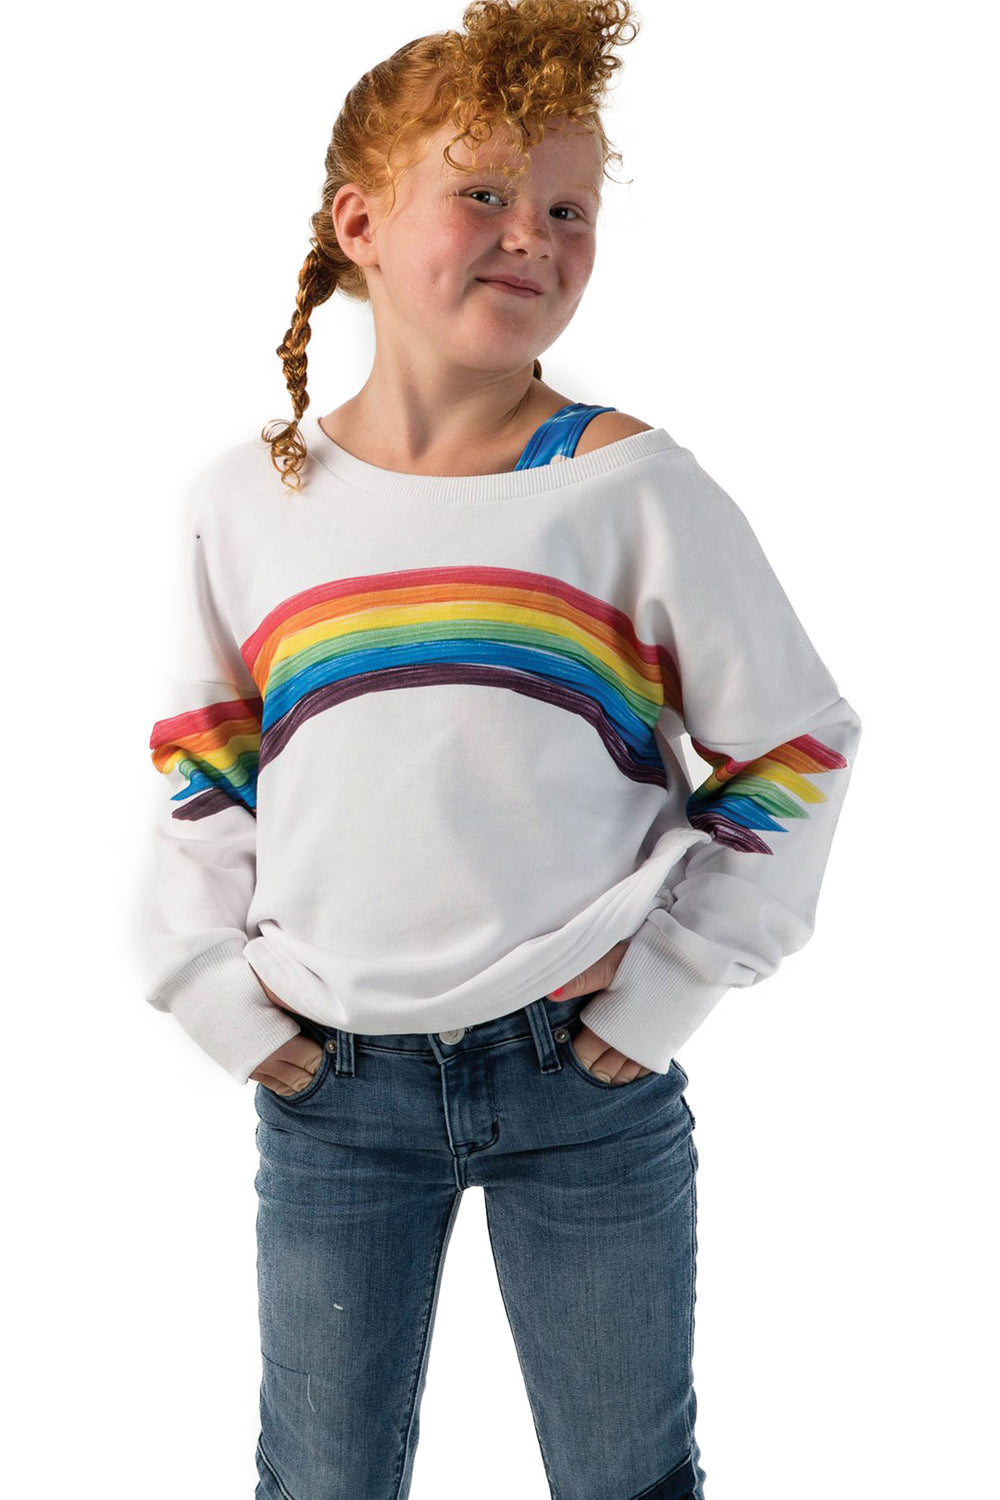 Rainbow Dreams Sweatshirt - Youth